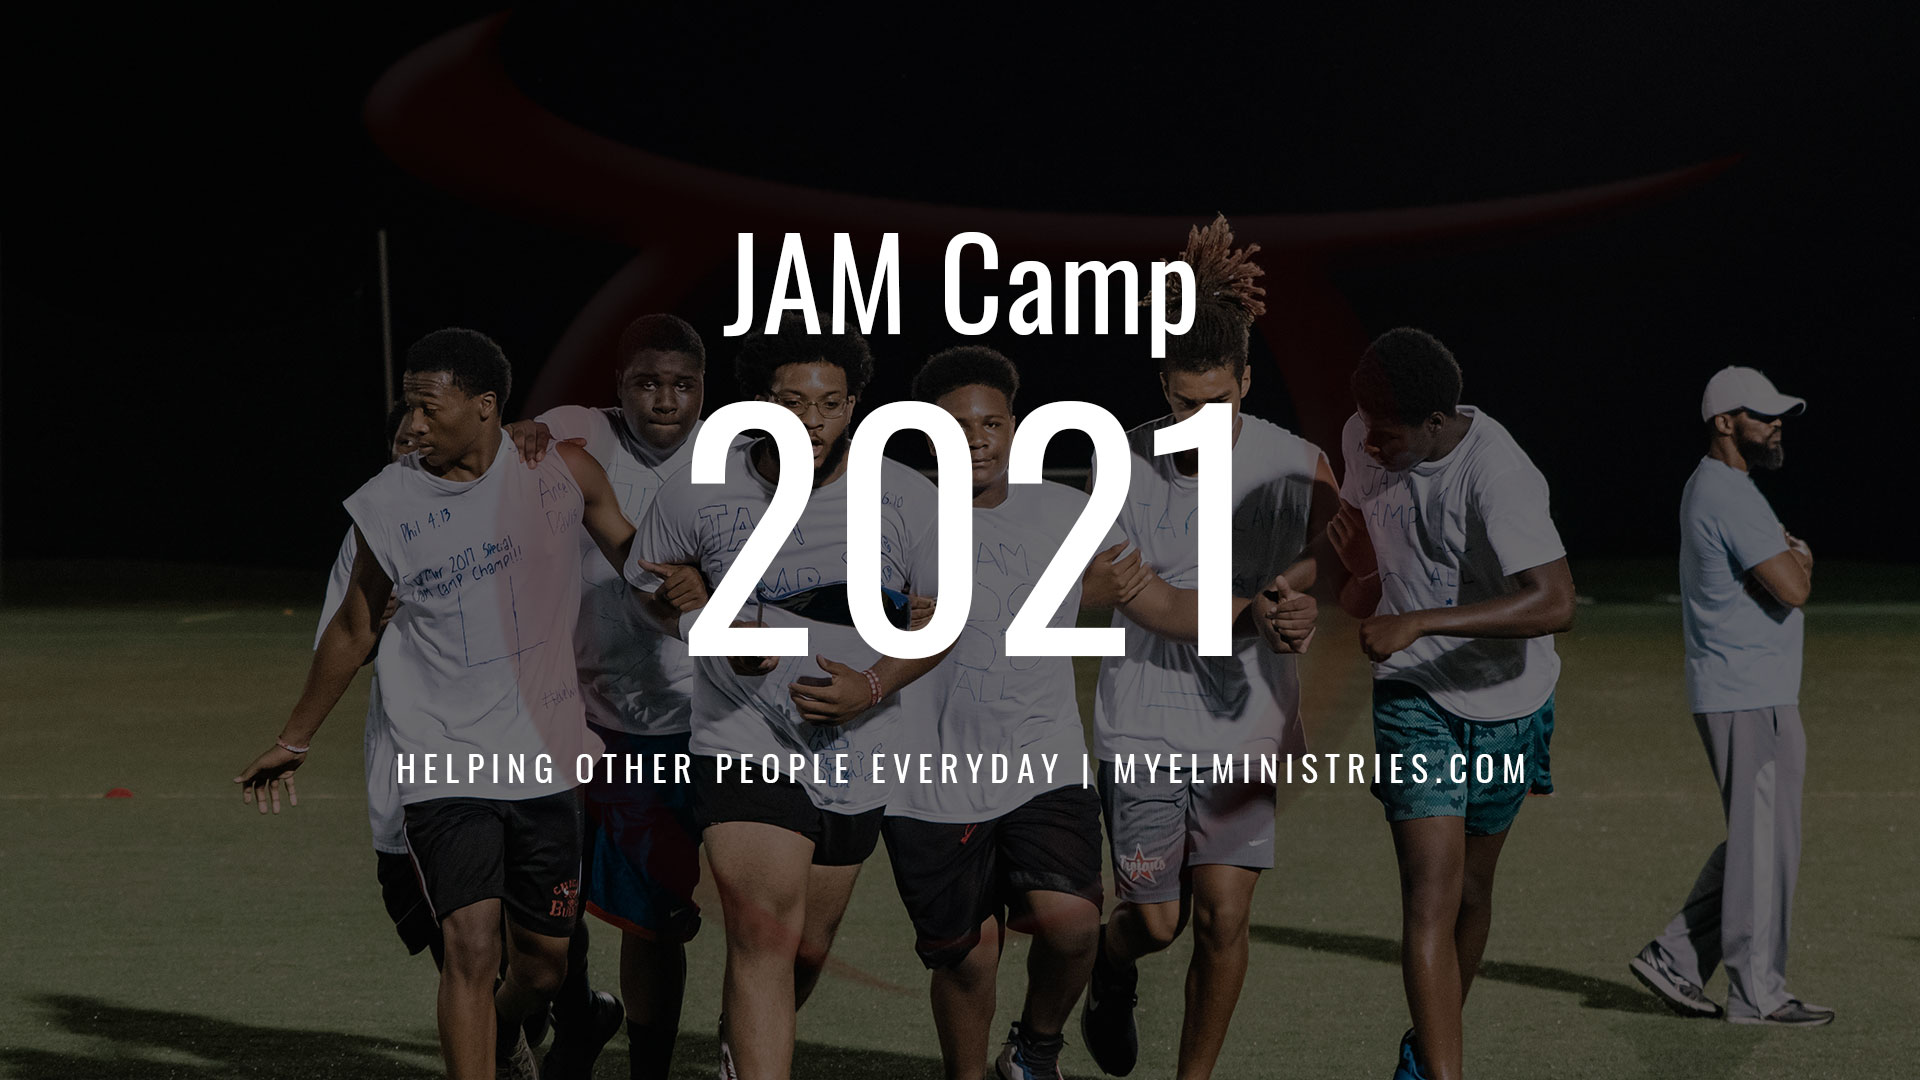 image for 2021 JAM Camp